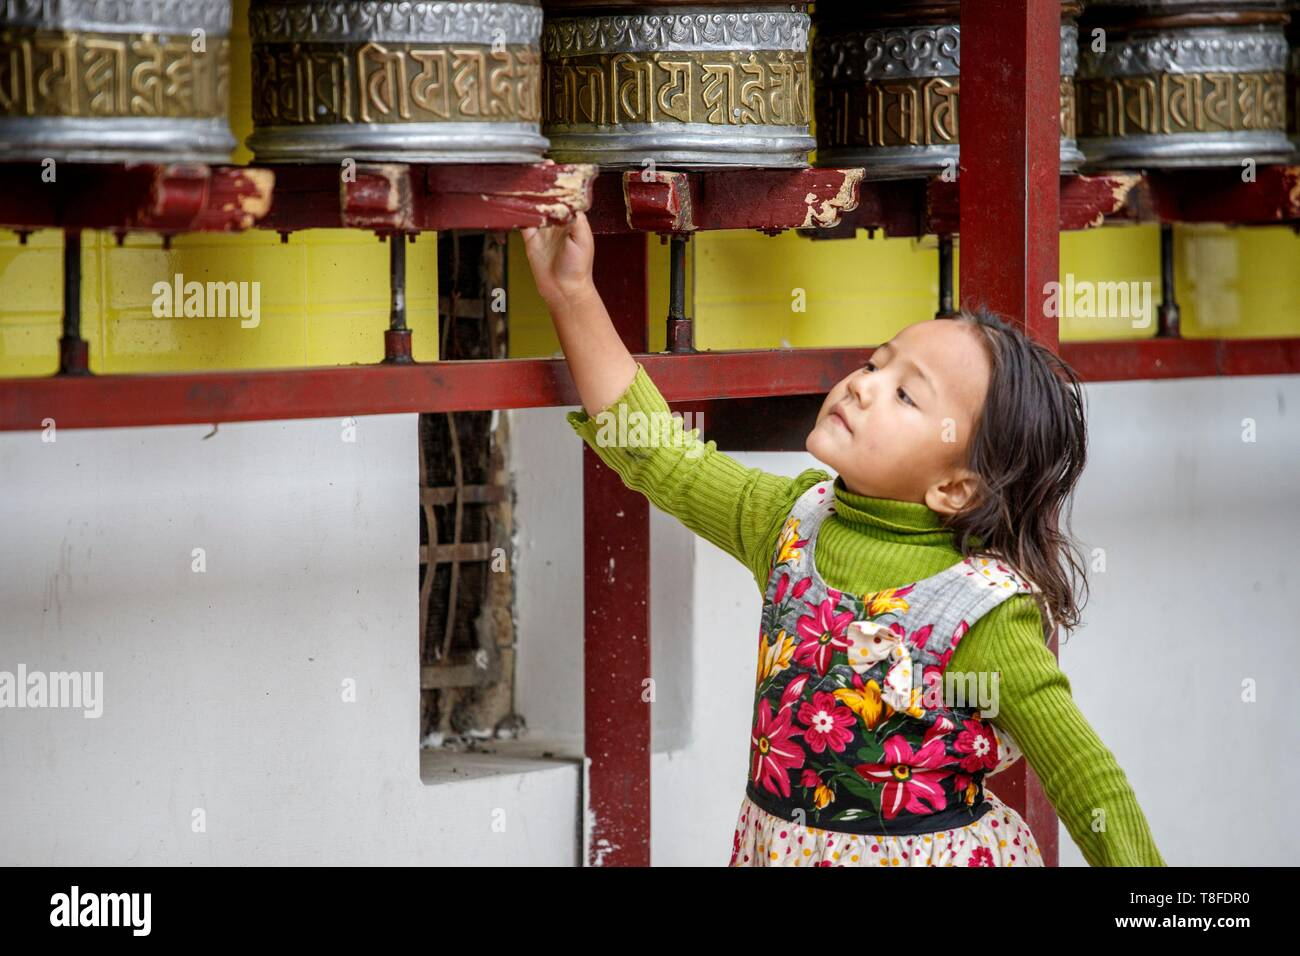 India, state of Jammu and Kashmir, Himalayas, Ladakh, Indus Valley, Leh (3500m), annual Ladakh Festival, Buddhist temple of Gompa Soma (Chokhang), a girl walks around the temple in a clockwise direction while turning the prayer wheels - Stock Image